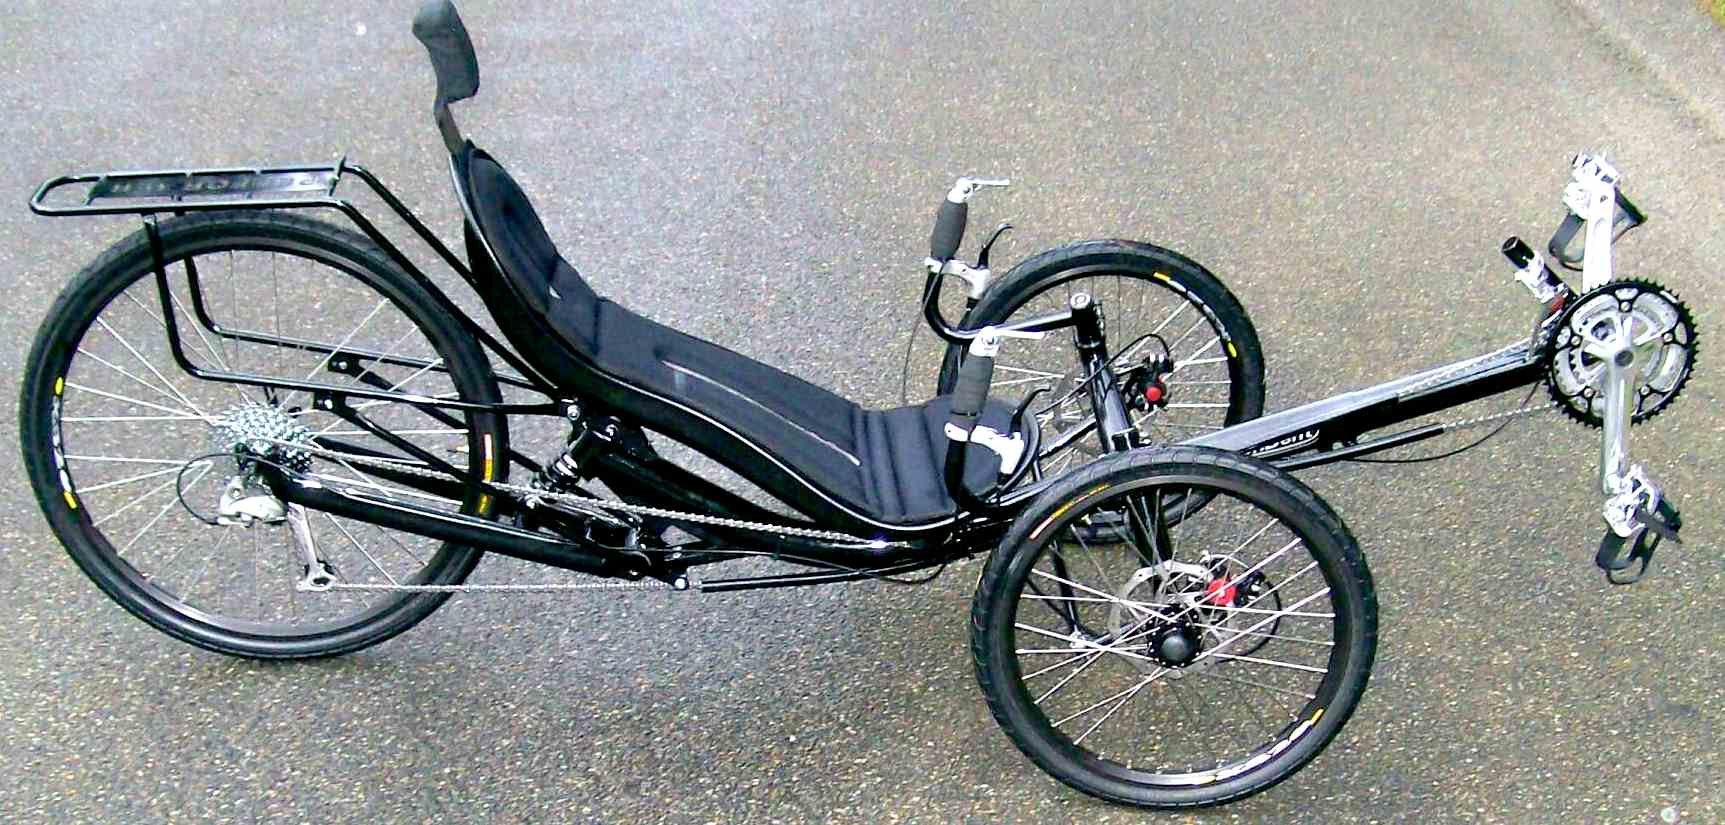 Recumbent Vs Upright Touring